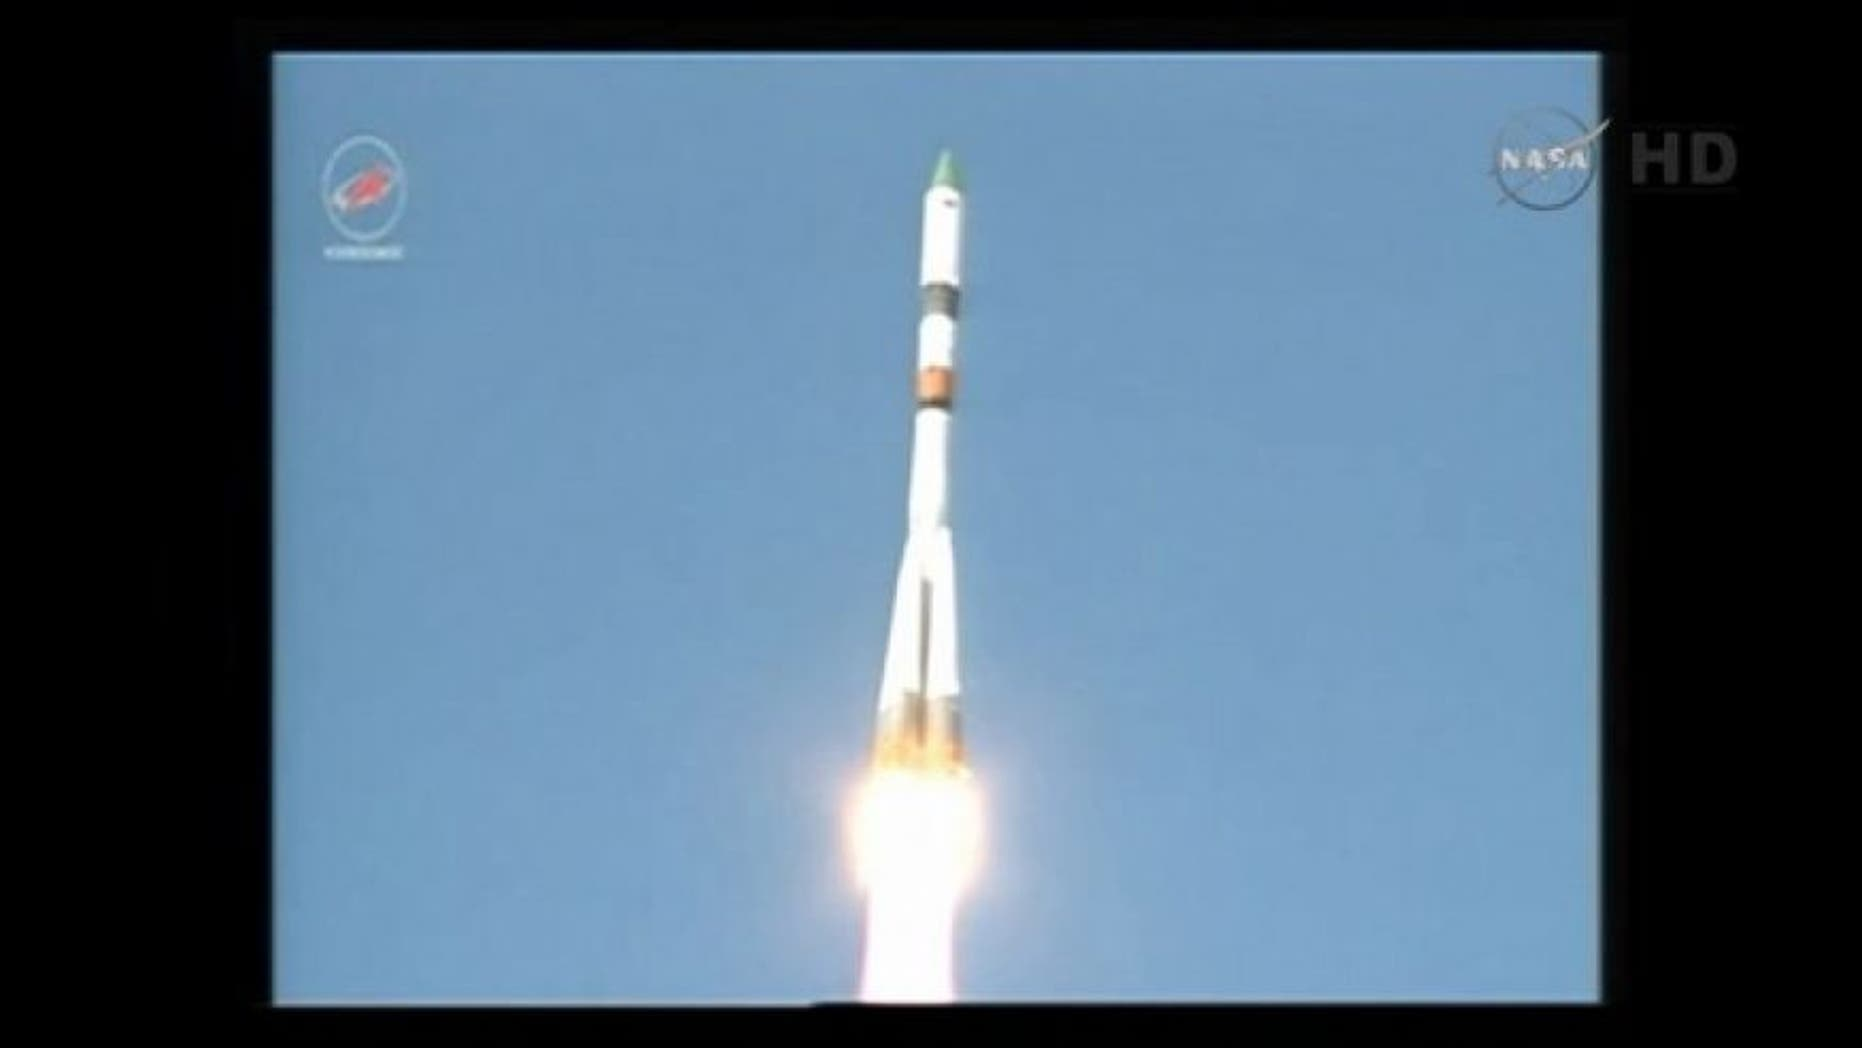 Russia's robotic Progress 59 cargo spacecraft launches toward the International Space Station atop a Soyuz rocket from Baikonur Cosmodrome in Kazakhstan on April 28, 2015.